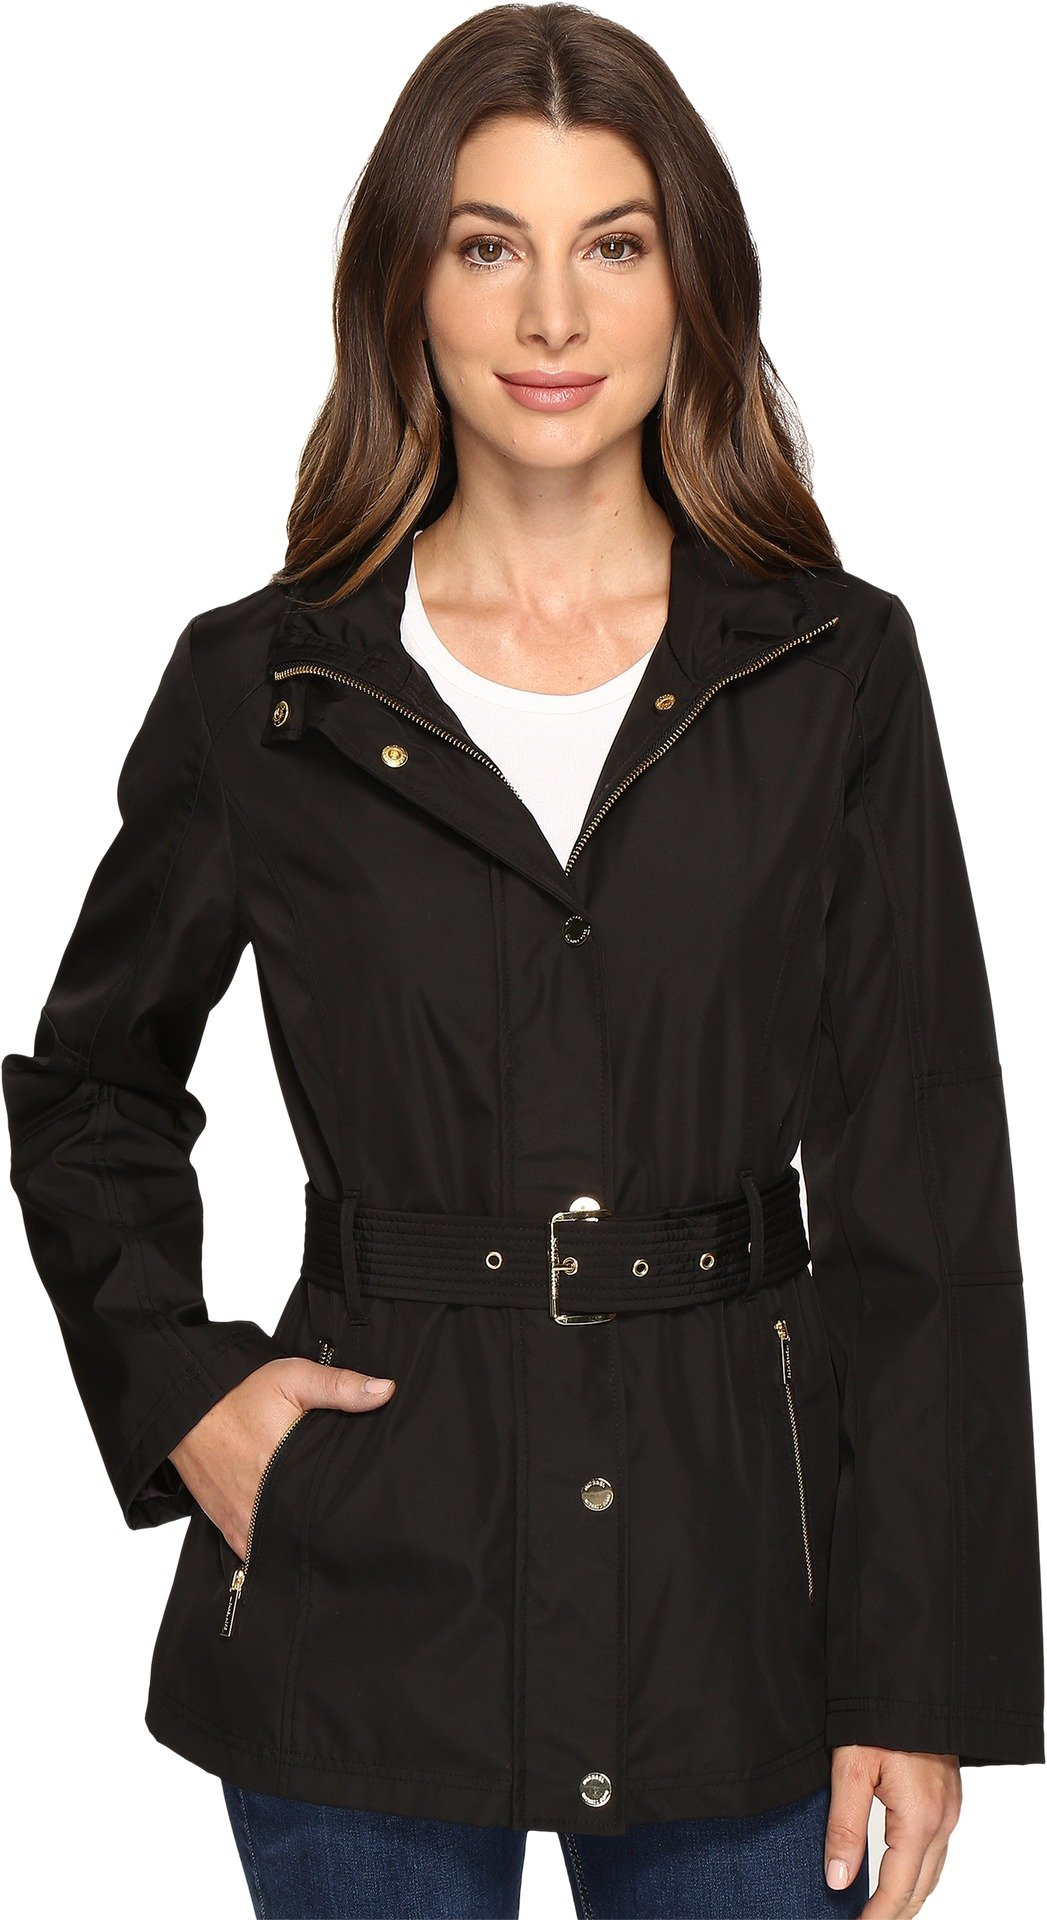 MICHAEL Michael Kors Women's Belted Snap Front Jacket M322119R74 Black Jacket by MICHAEL Michael Kors